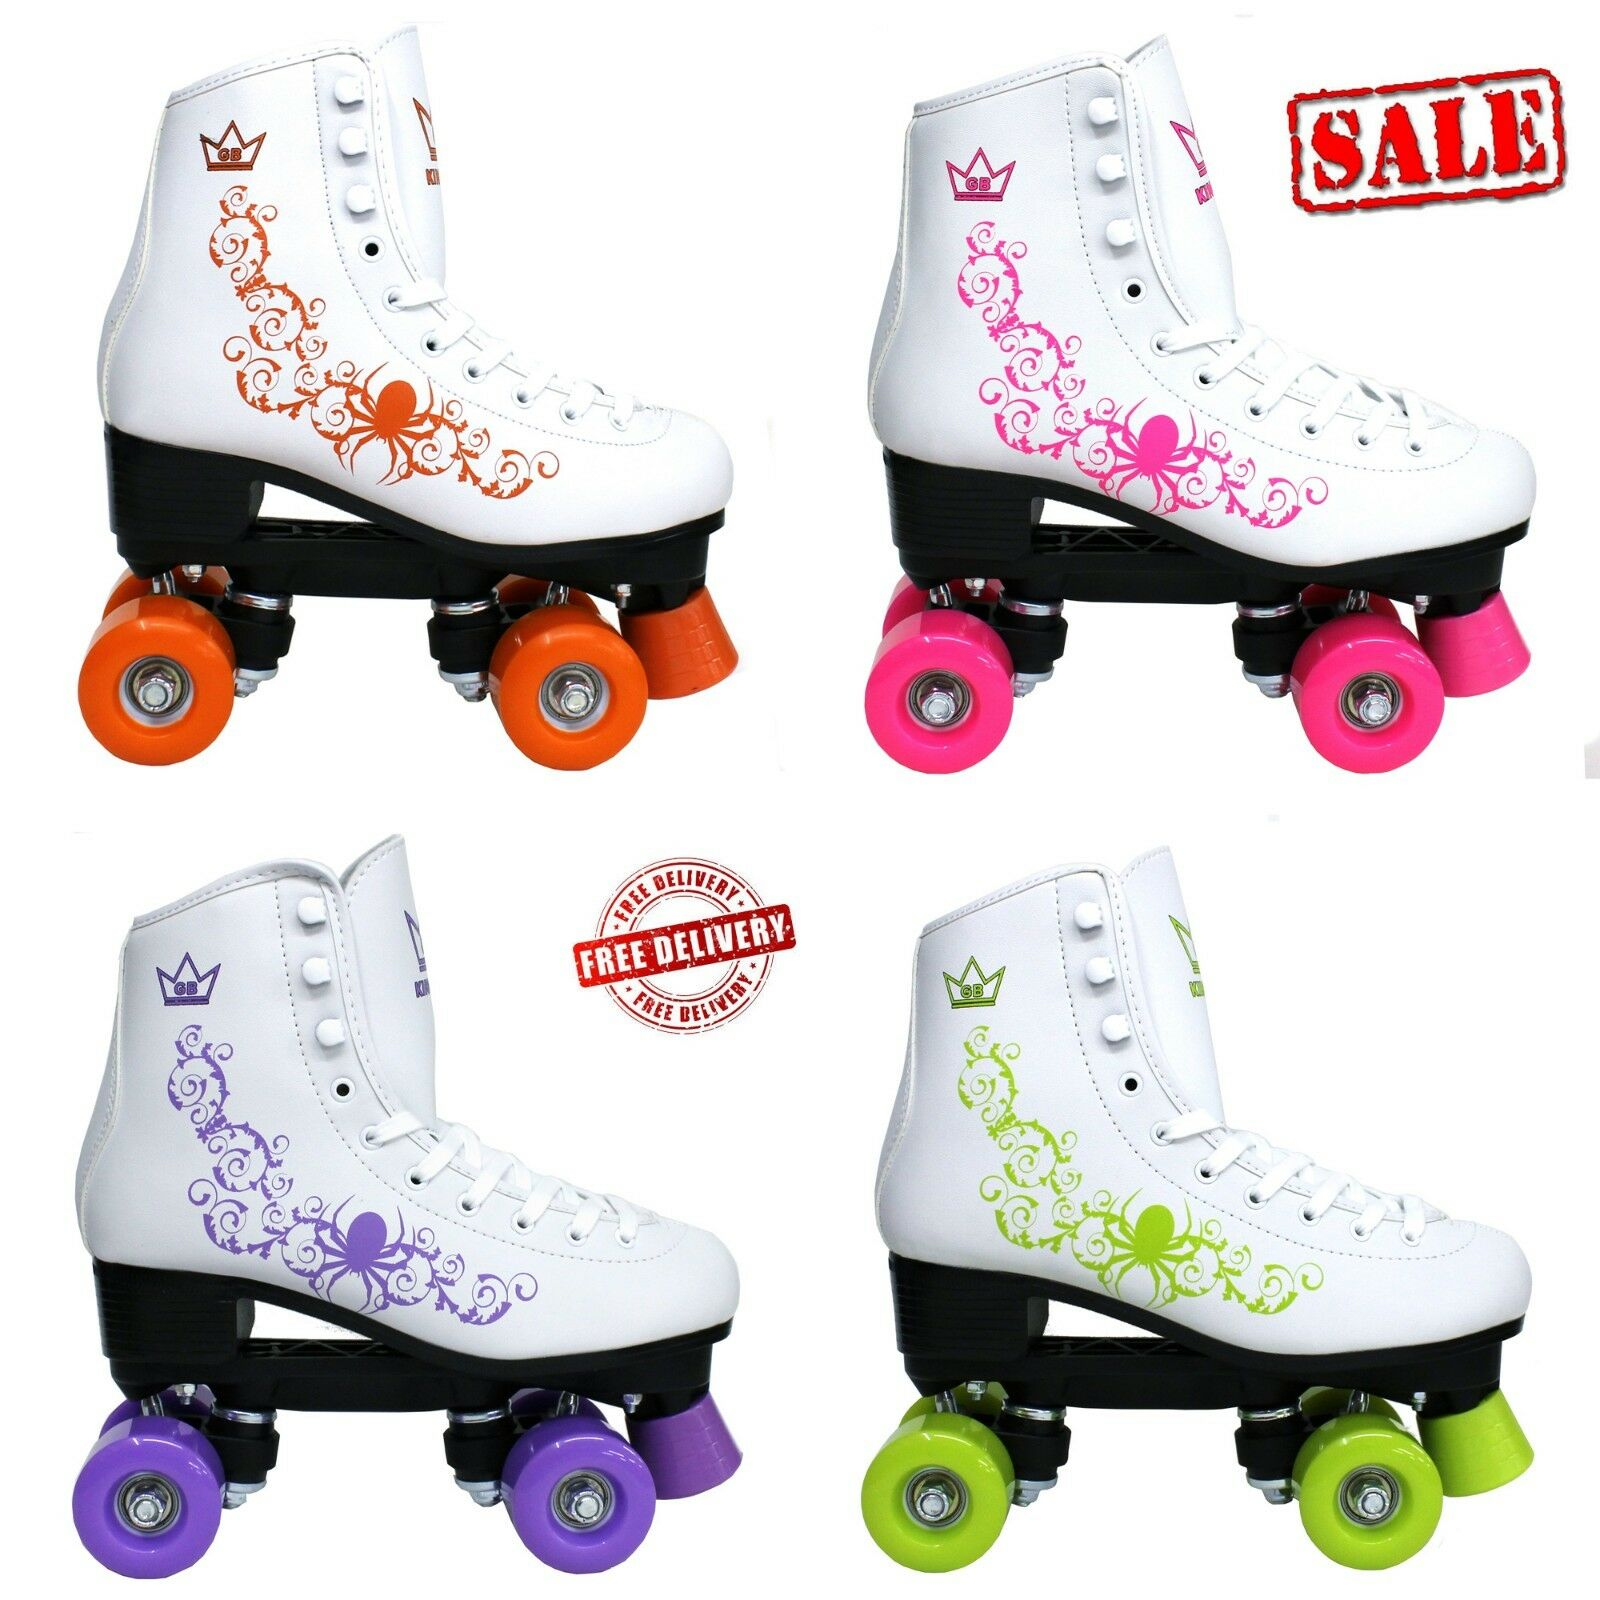 KINGDOM GB QUAD ROLLER SKATES VECTOR RETRO DISCO GIRLS Damenschuhe Stiefel Rosa lila